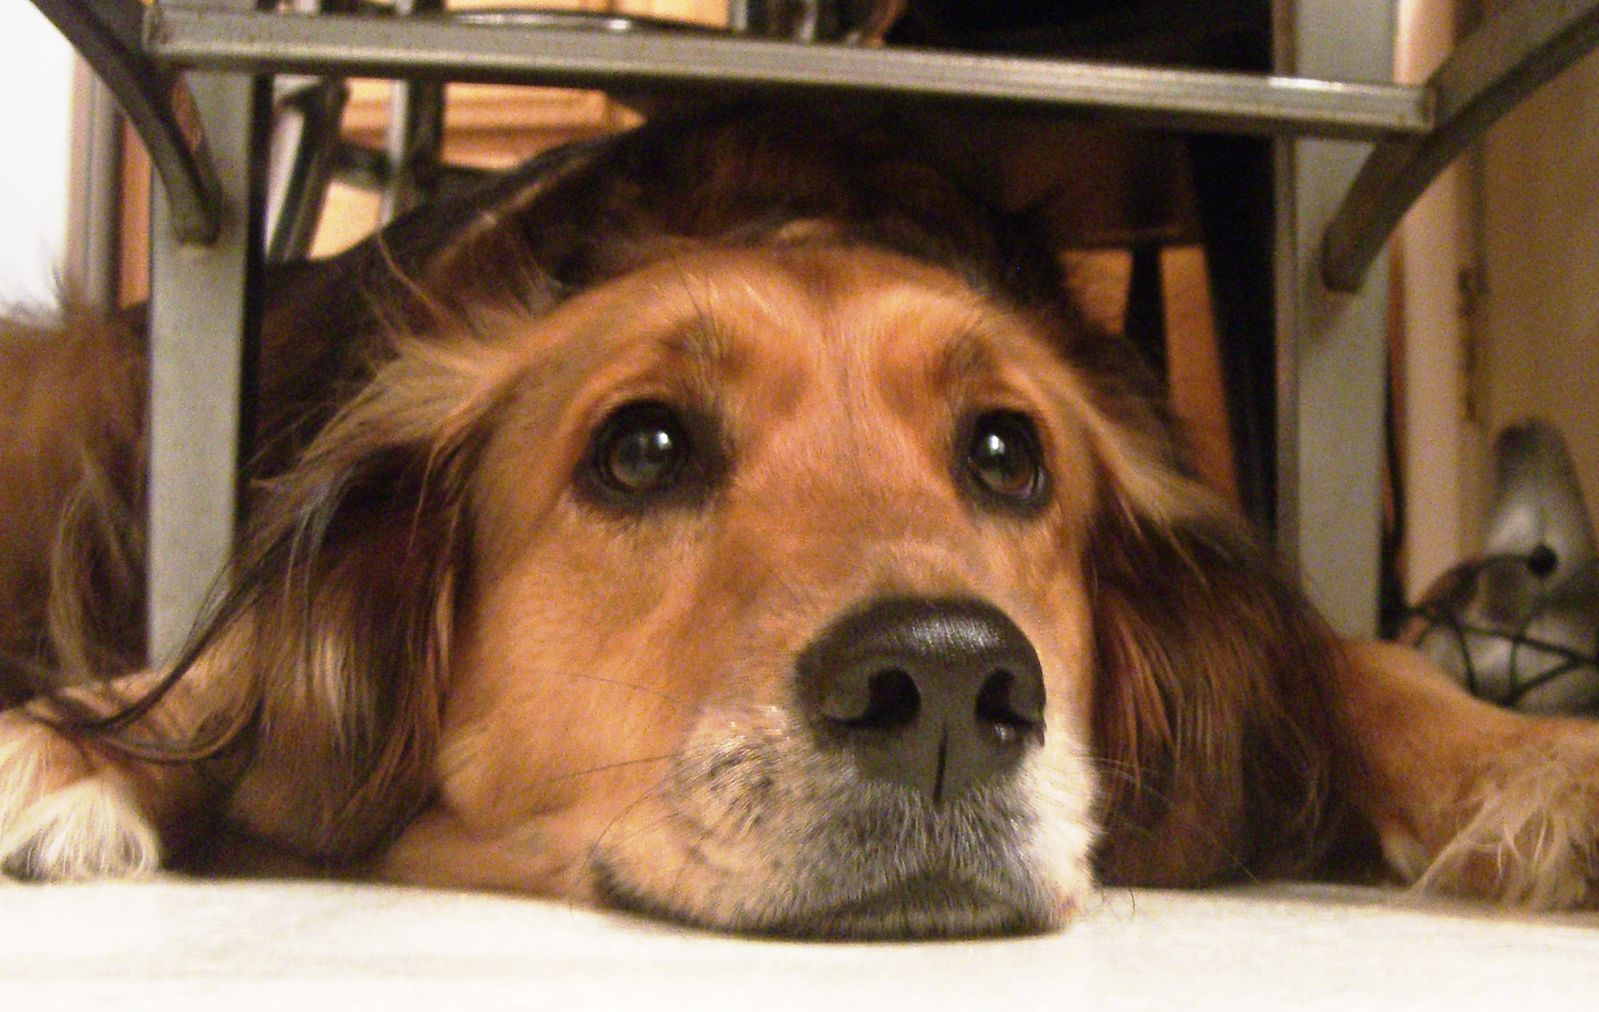 Waiting under the table for crumbs